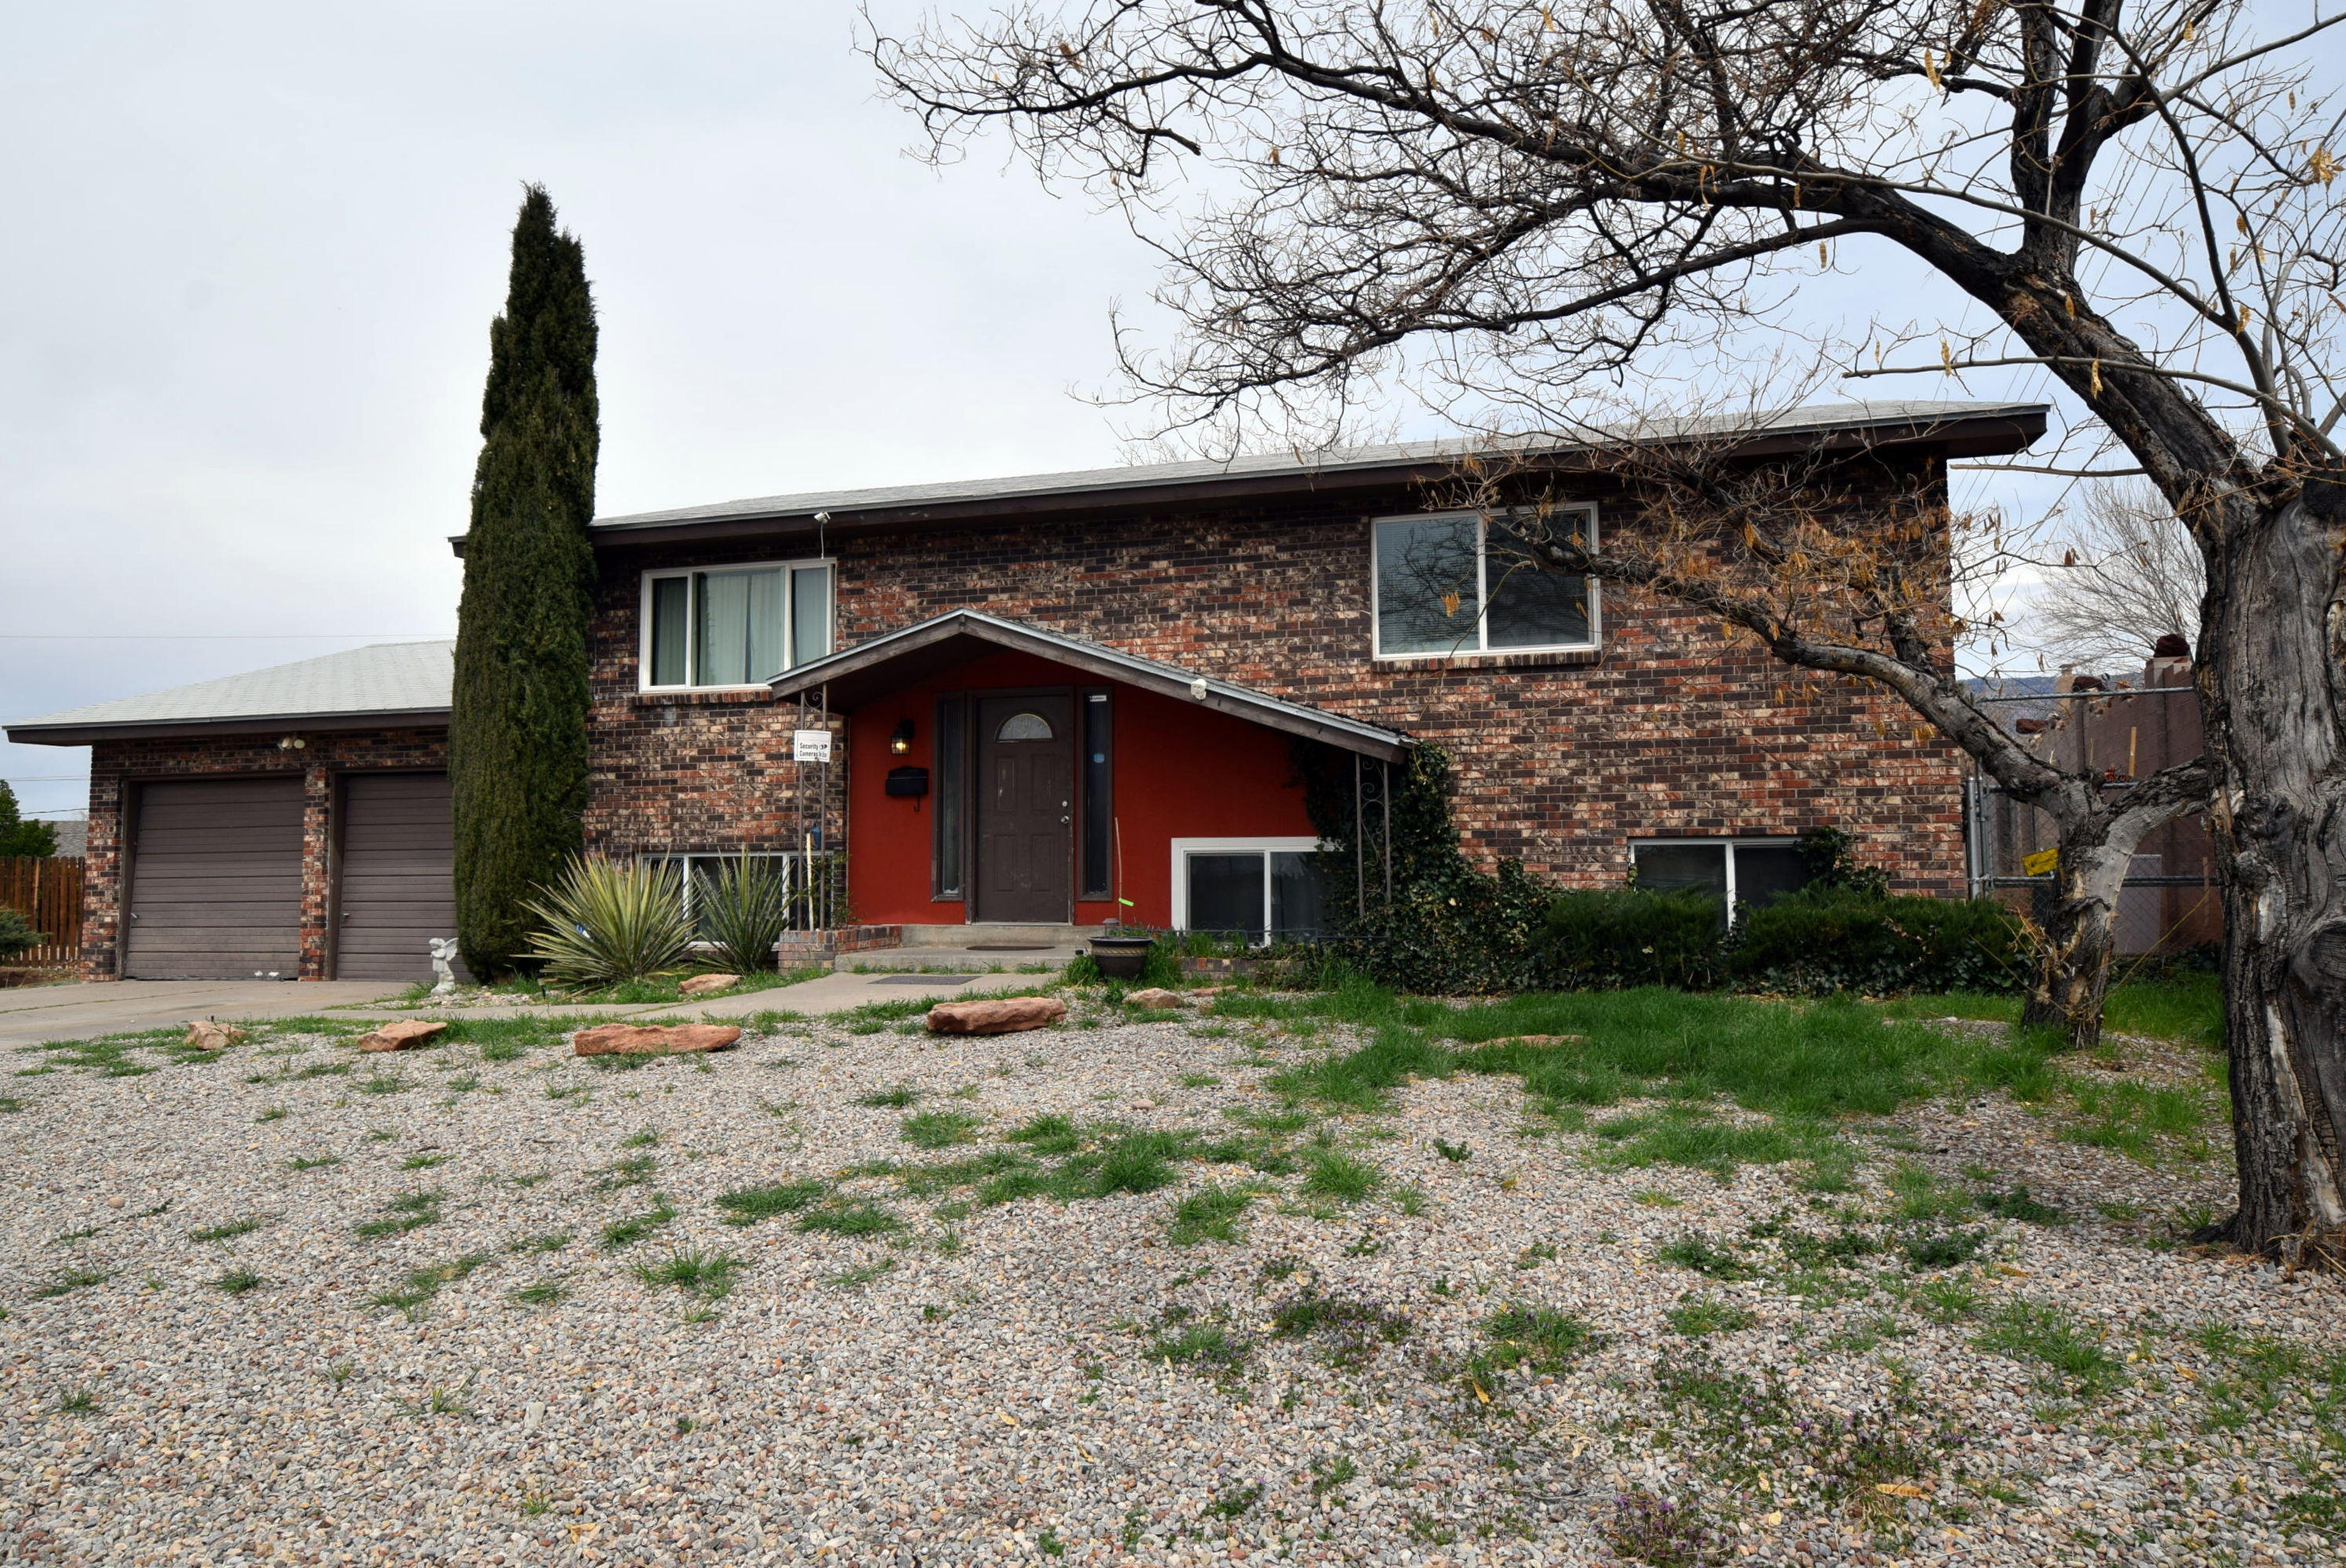 9229 LAS CAMAS Road NE, Albuquerque, NM 87111 - Albuquerque, NM real estate listing